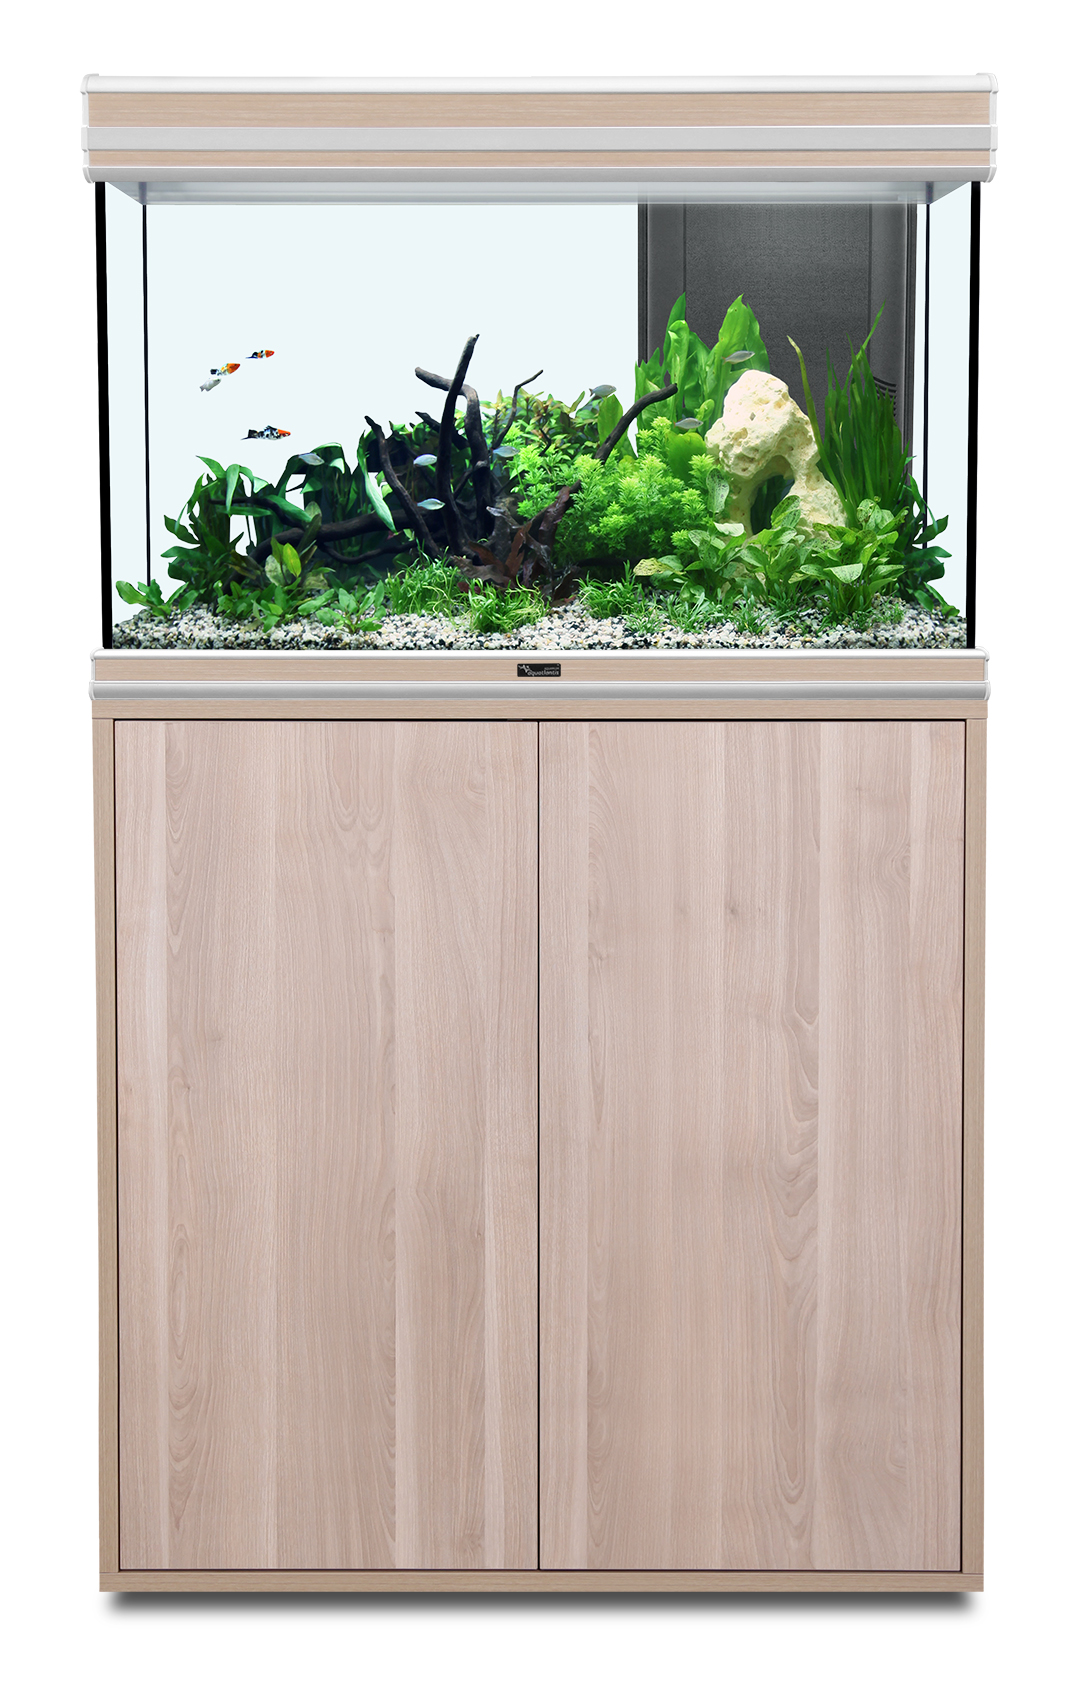 aquarium aquatlantis fusion 80 tout quip clairage leds 176 l vendu avec ou sans meuble 4. Black Bedroom Furniture Sets. Home Design Ideas